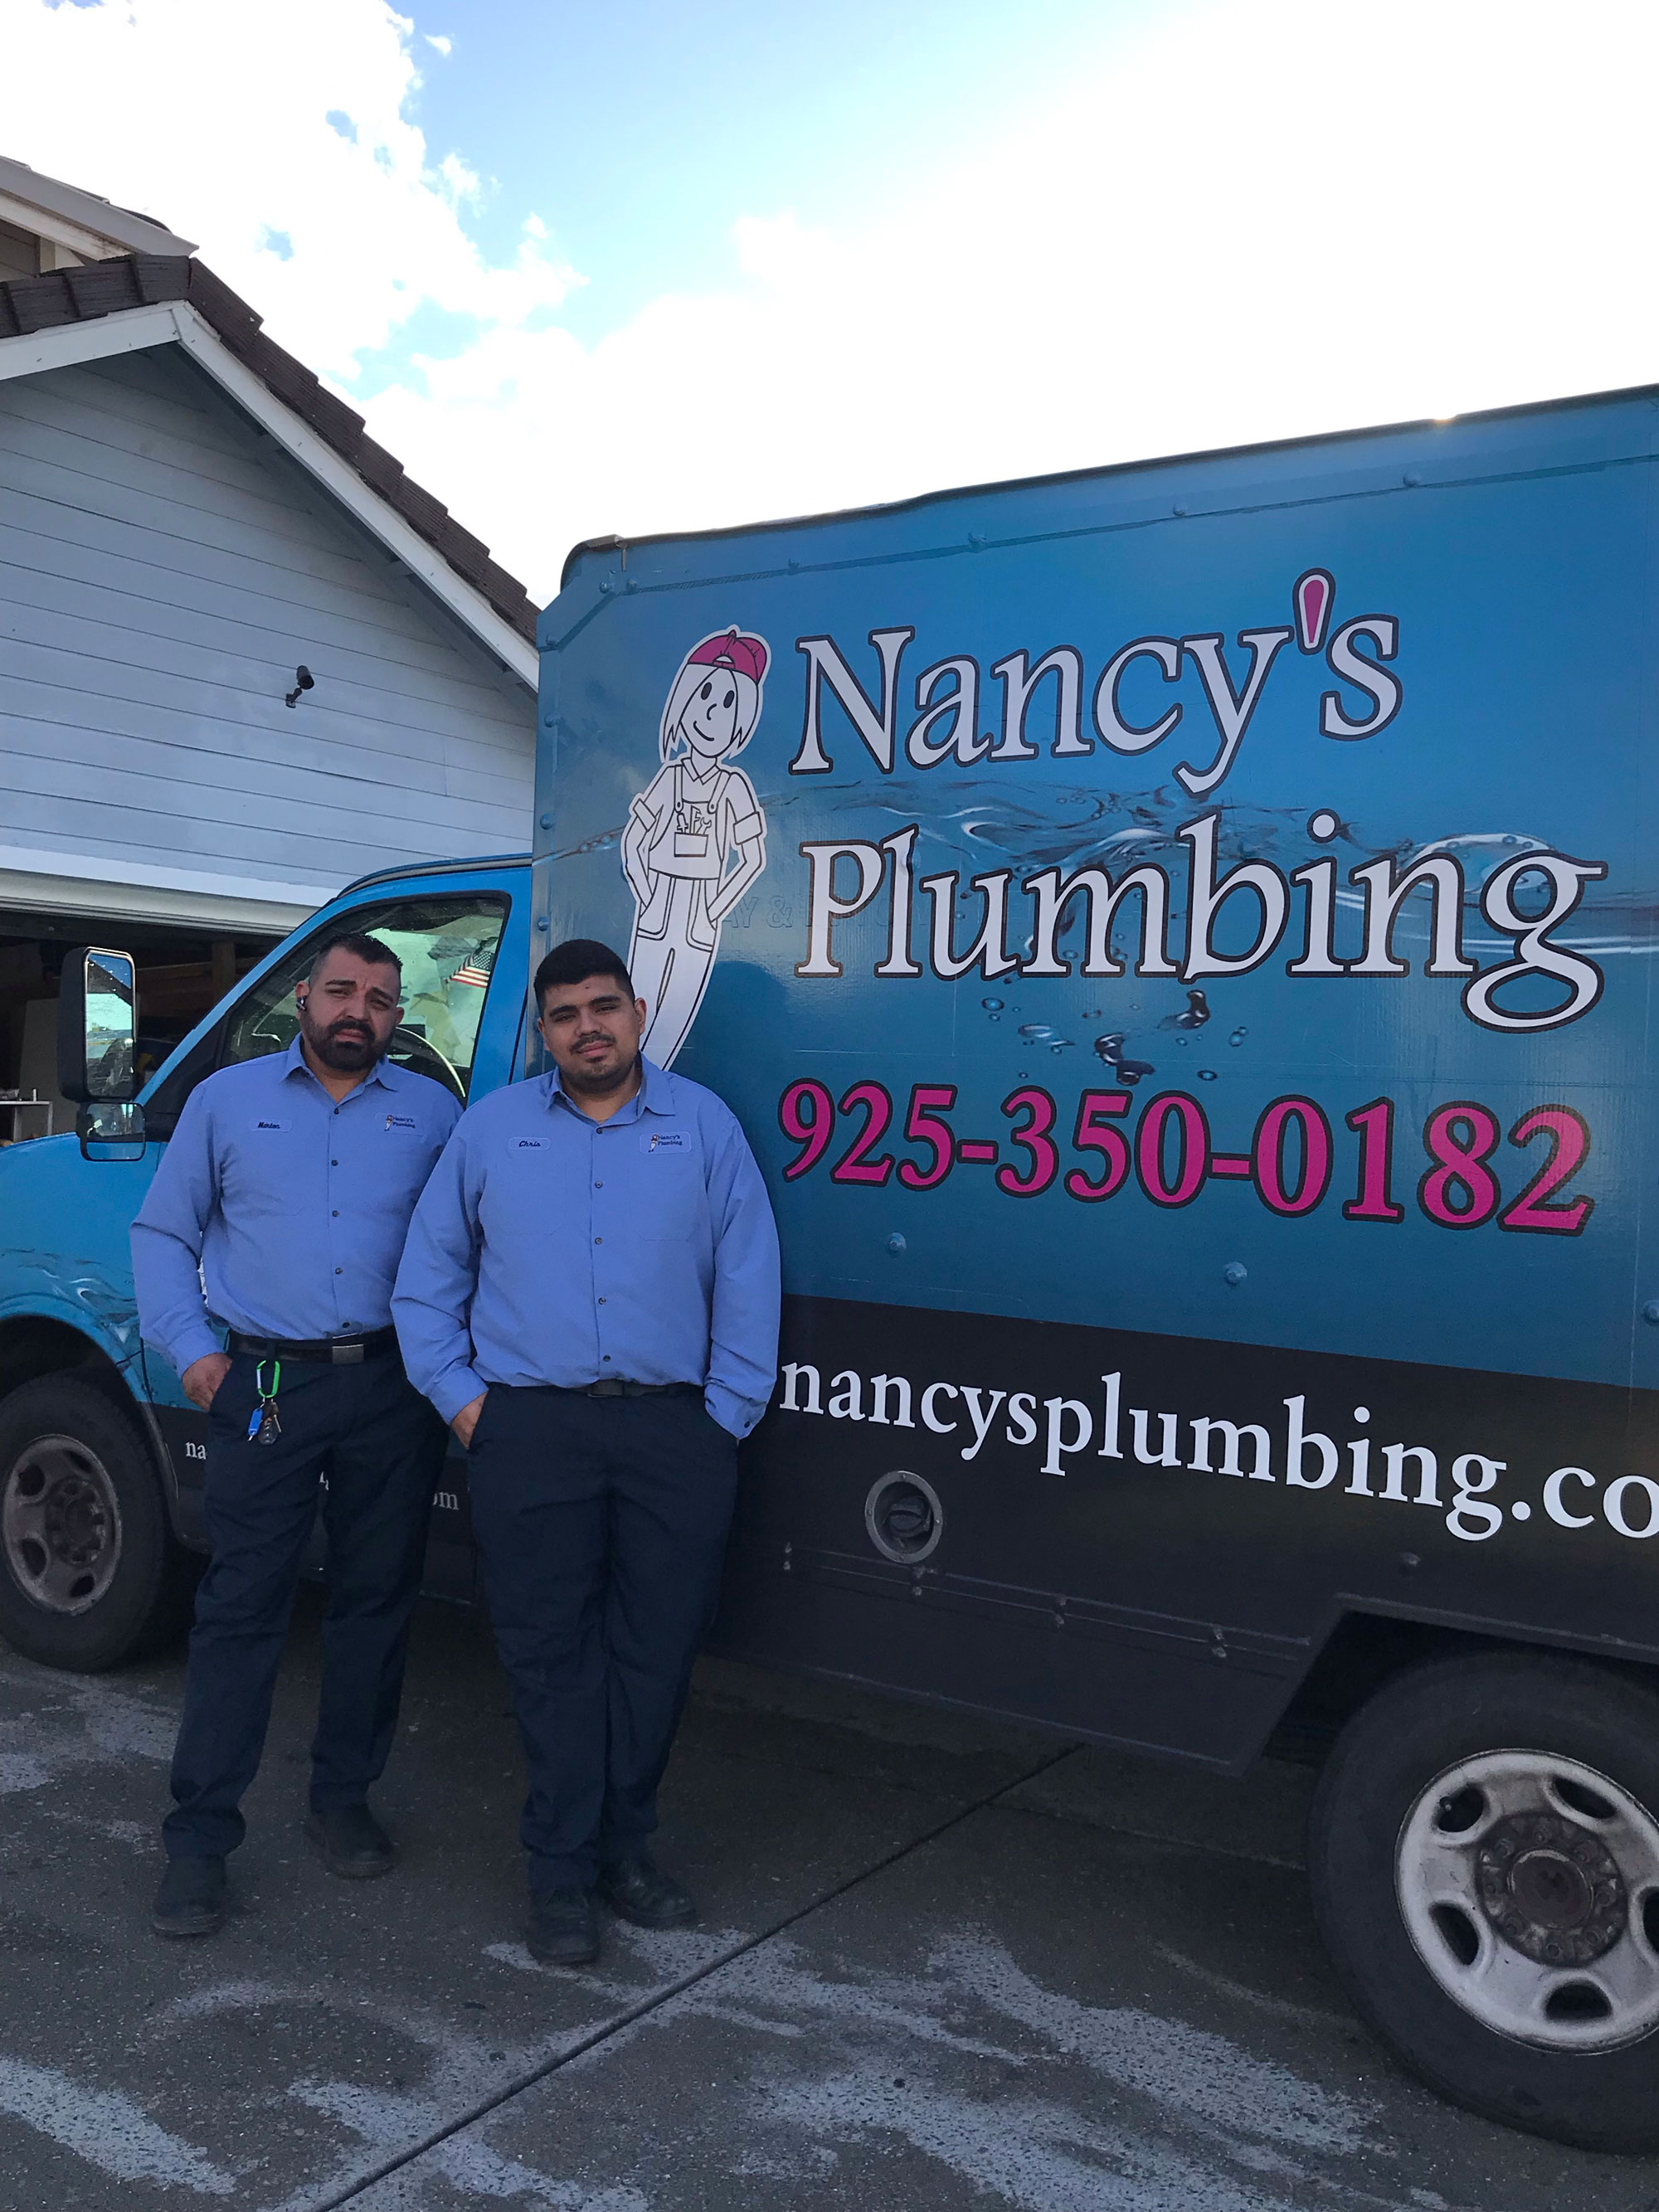 Nancy's Plumbing team photo